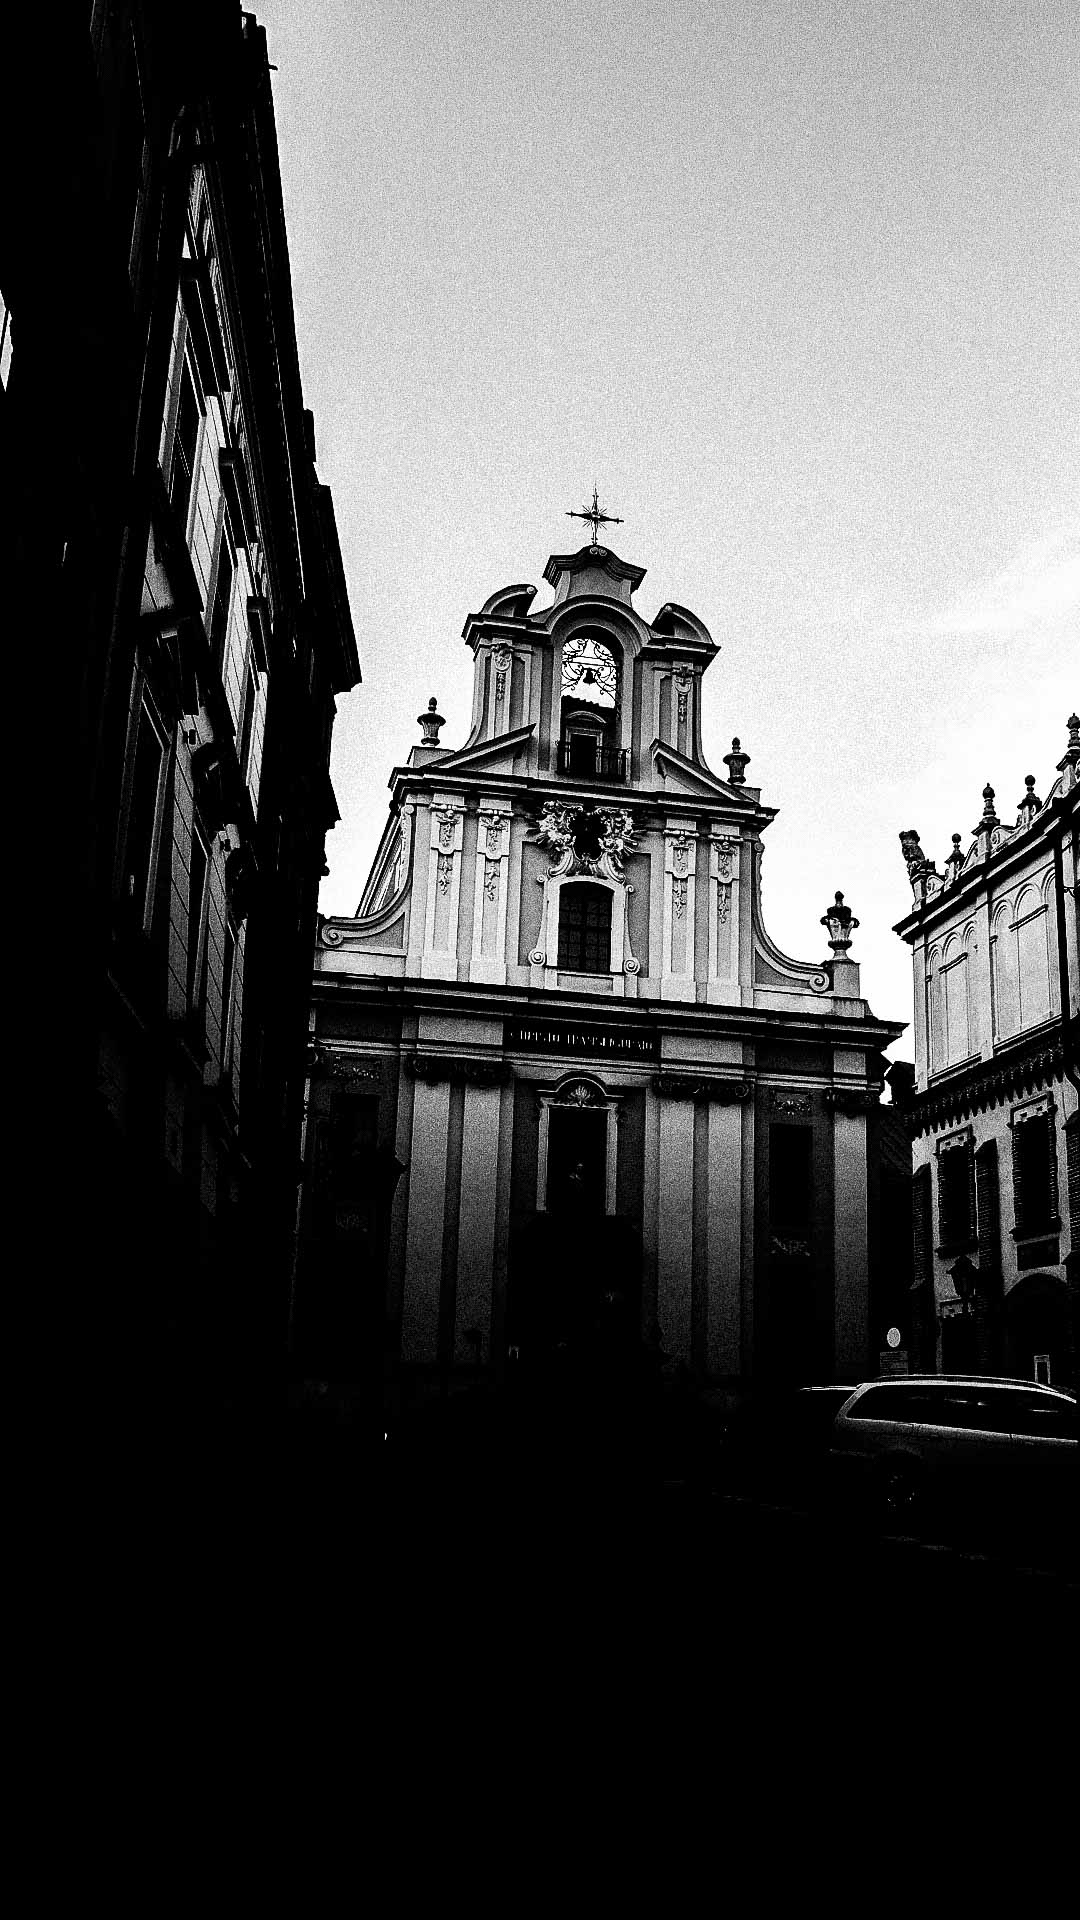 Krakow church in black and white